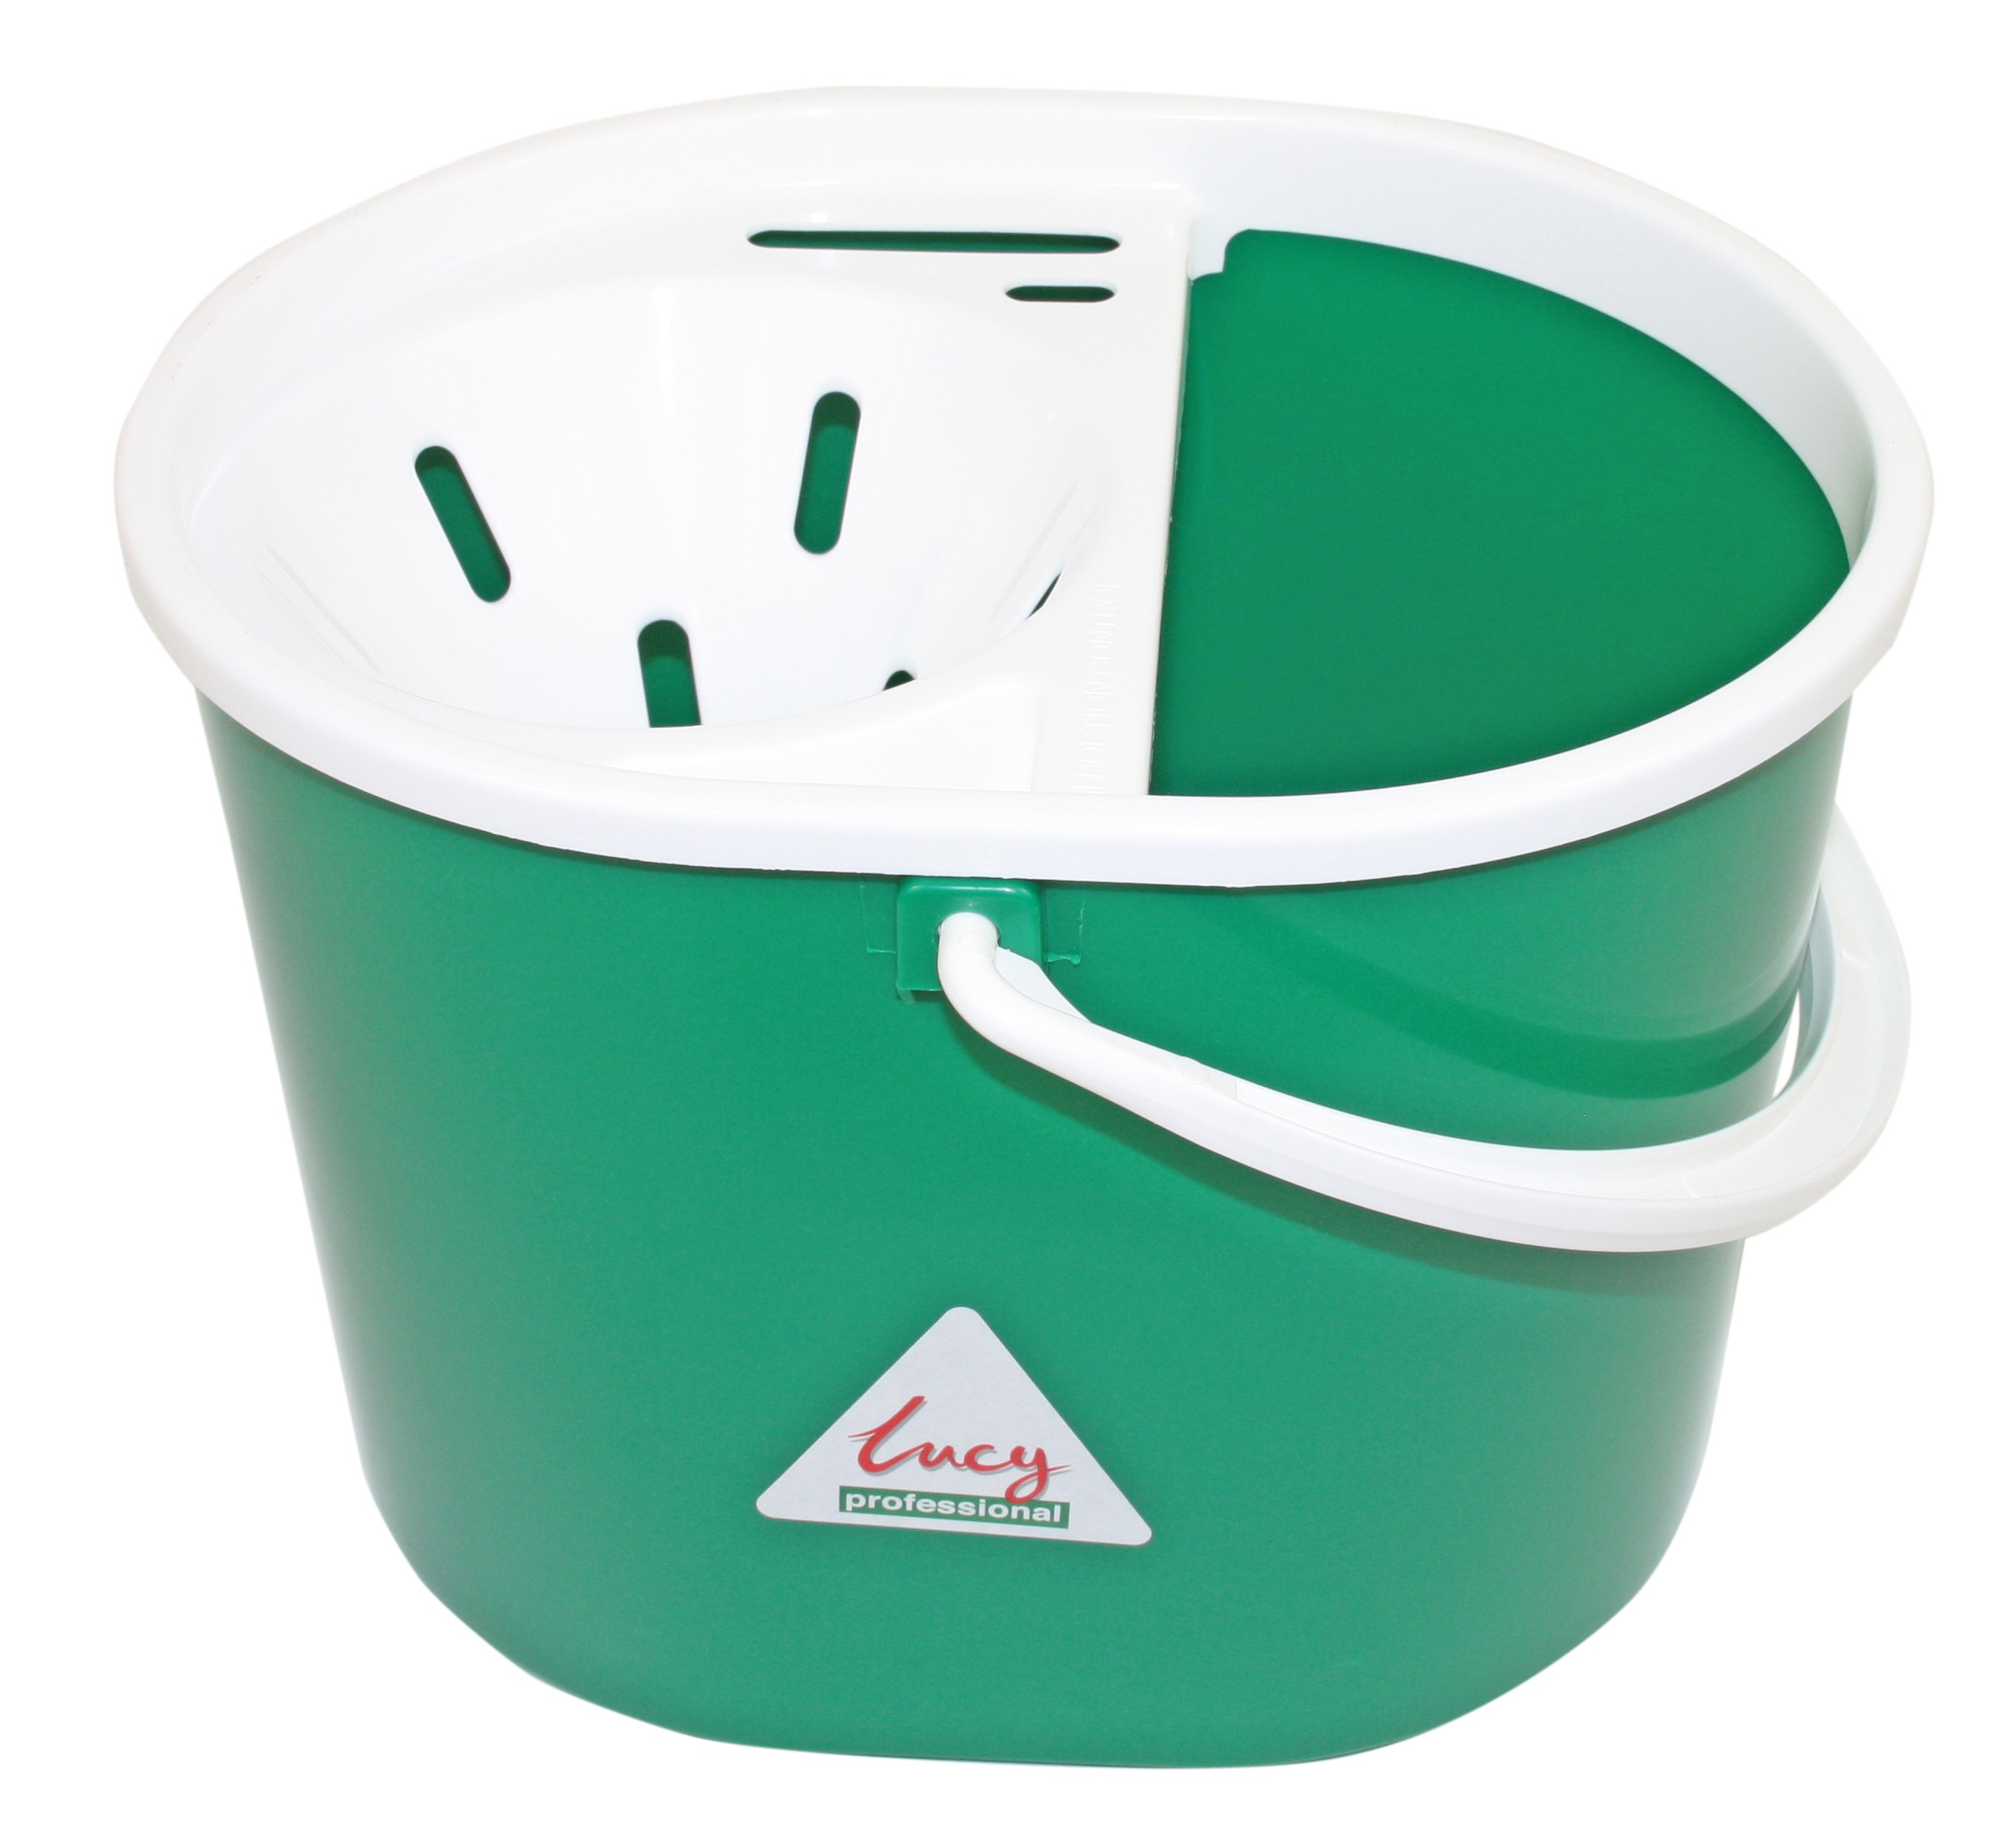 Lucy Oval Mop Bucket GREEN